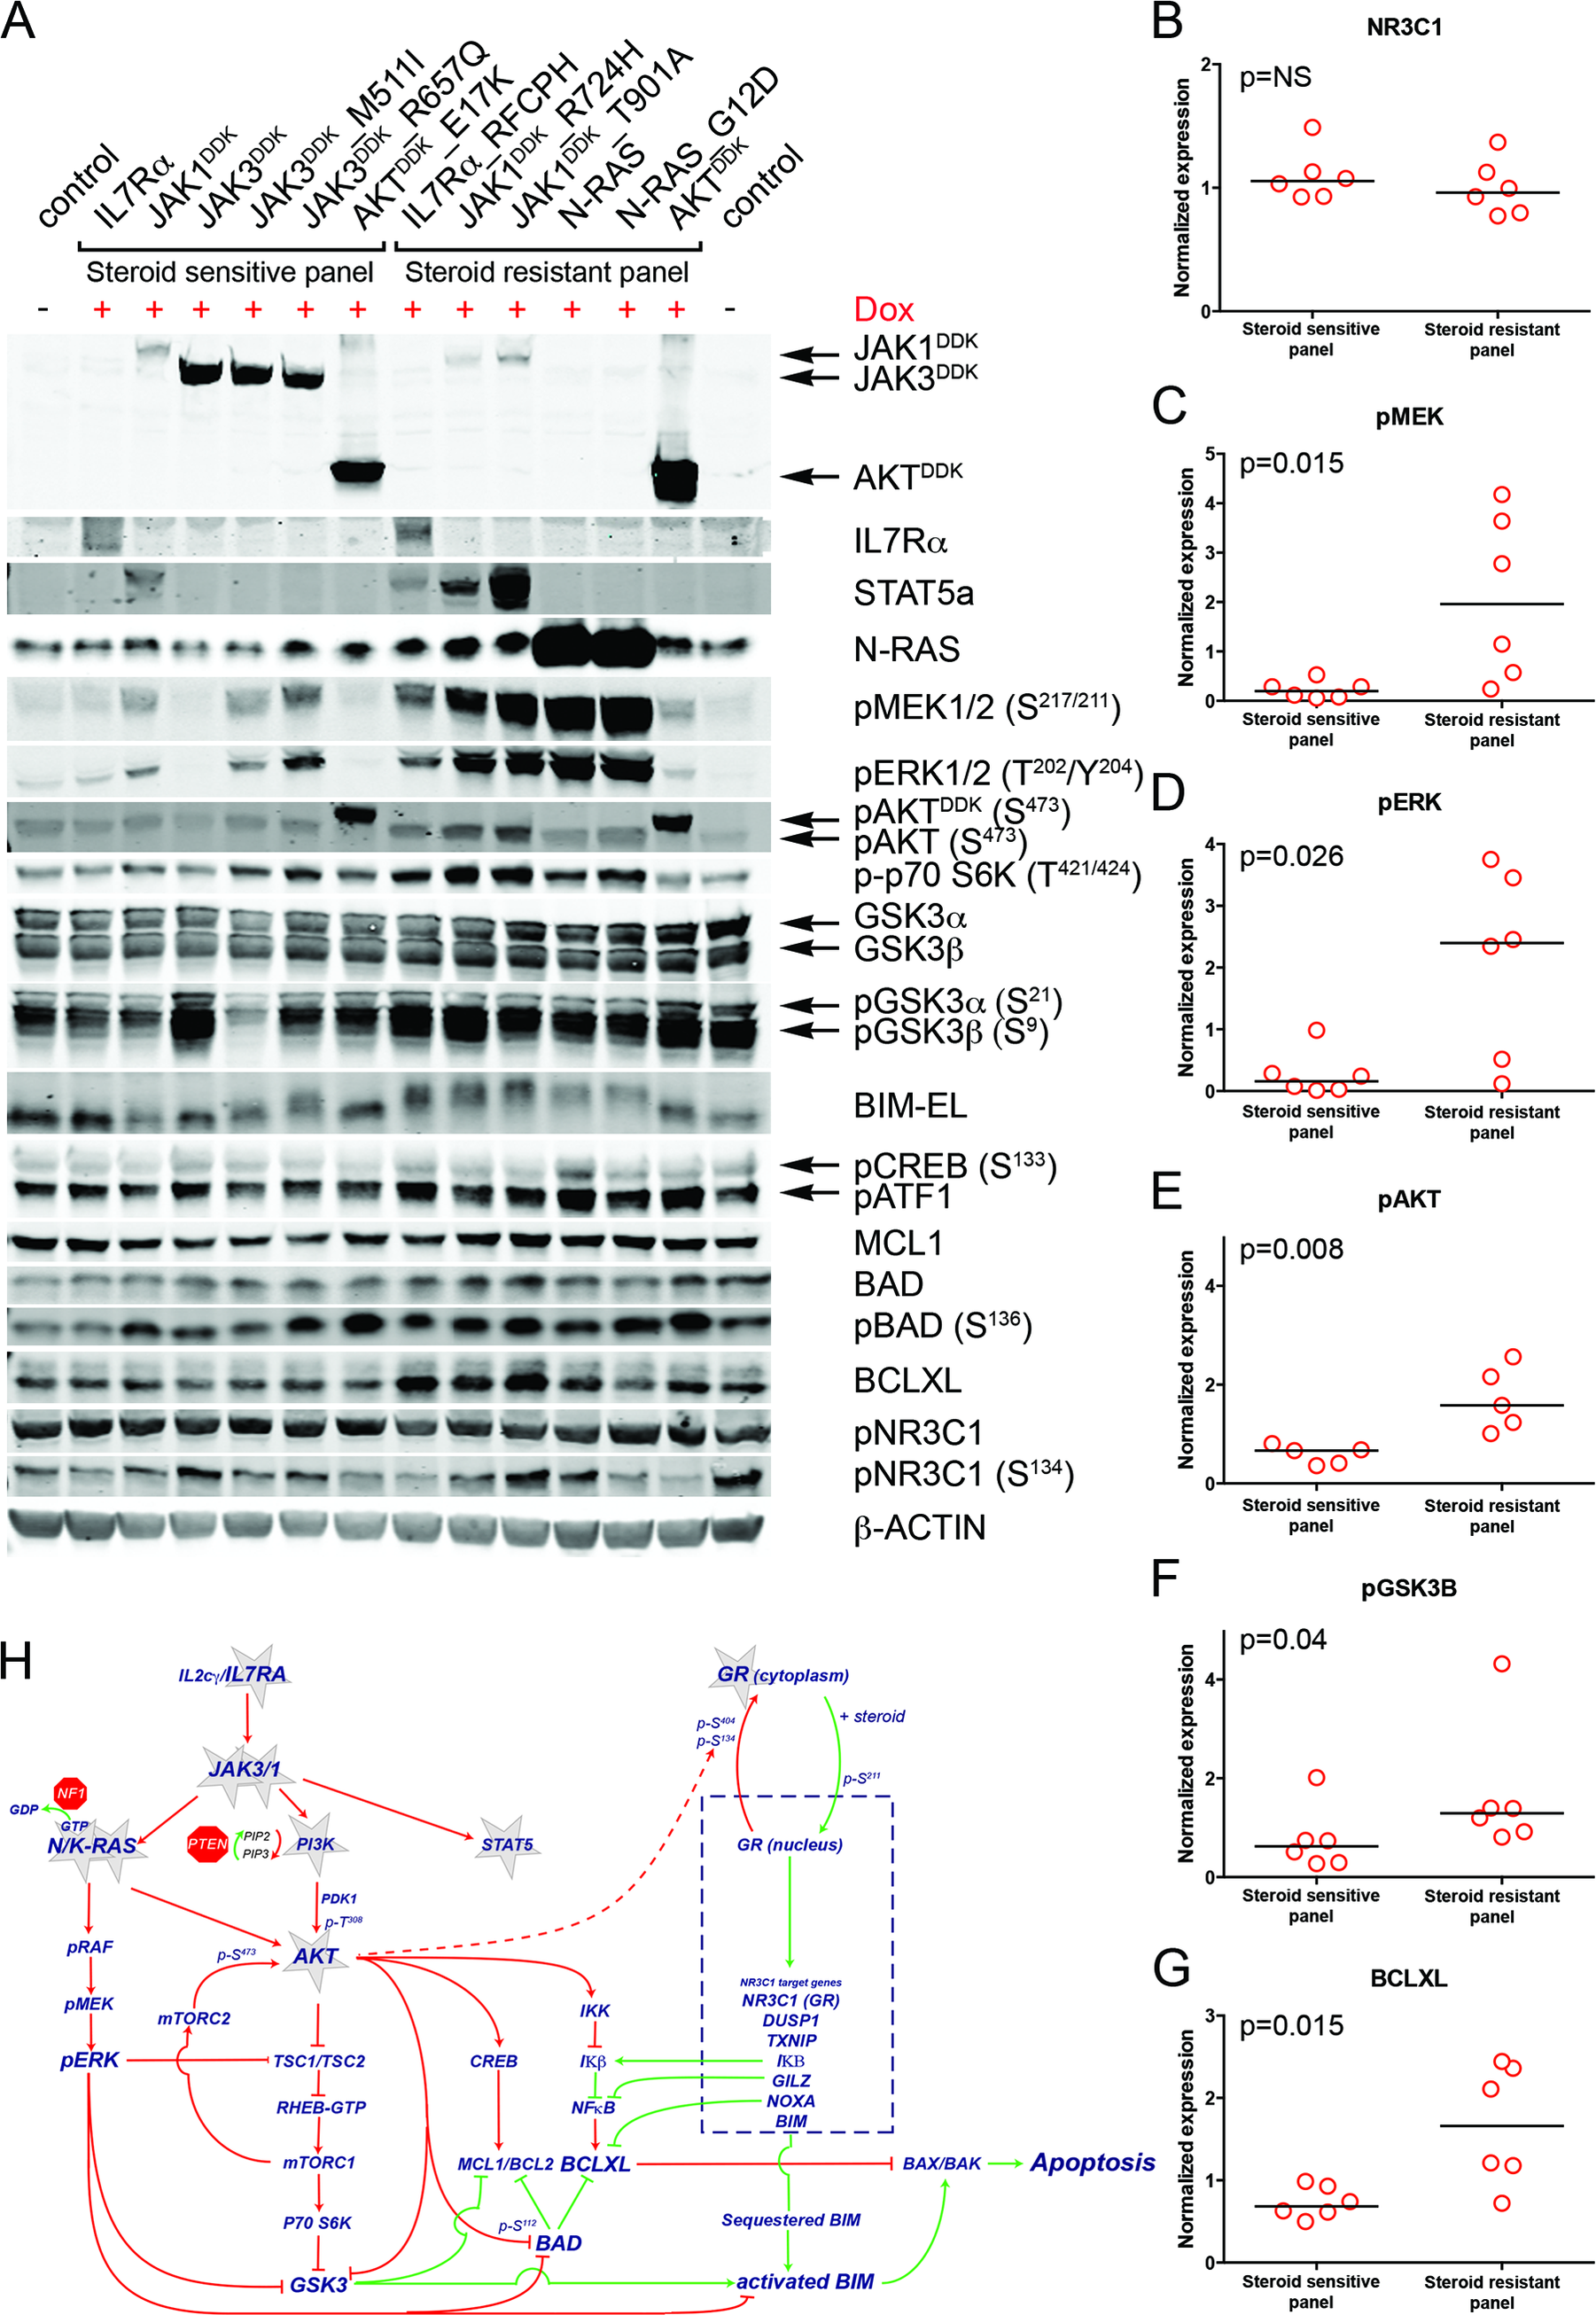 Steroid resistance induced by wild-type or mutant IL7R signaling molecules is associated with activation of MEK-ERK and/or AKT.